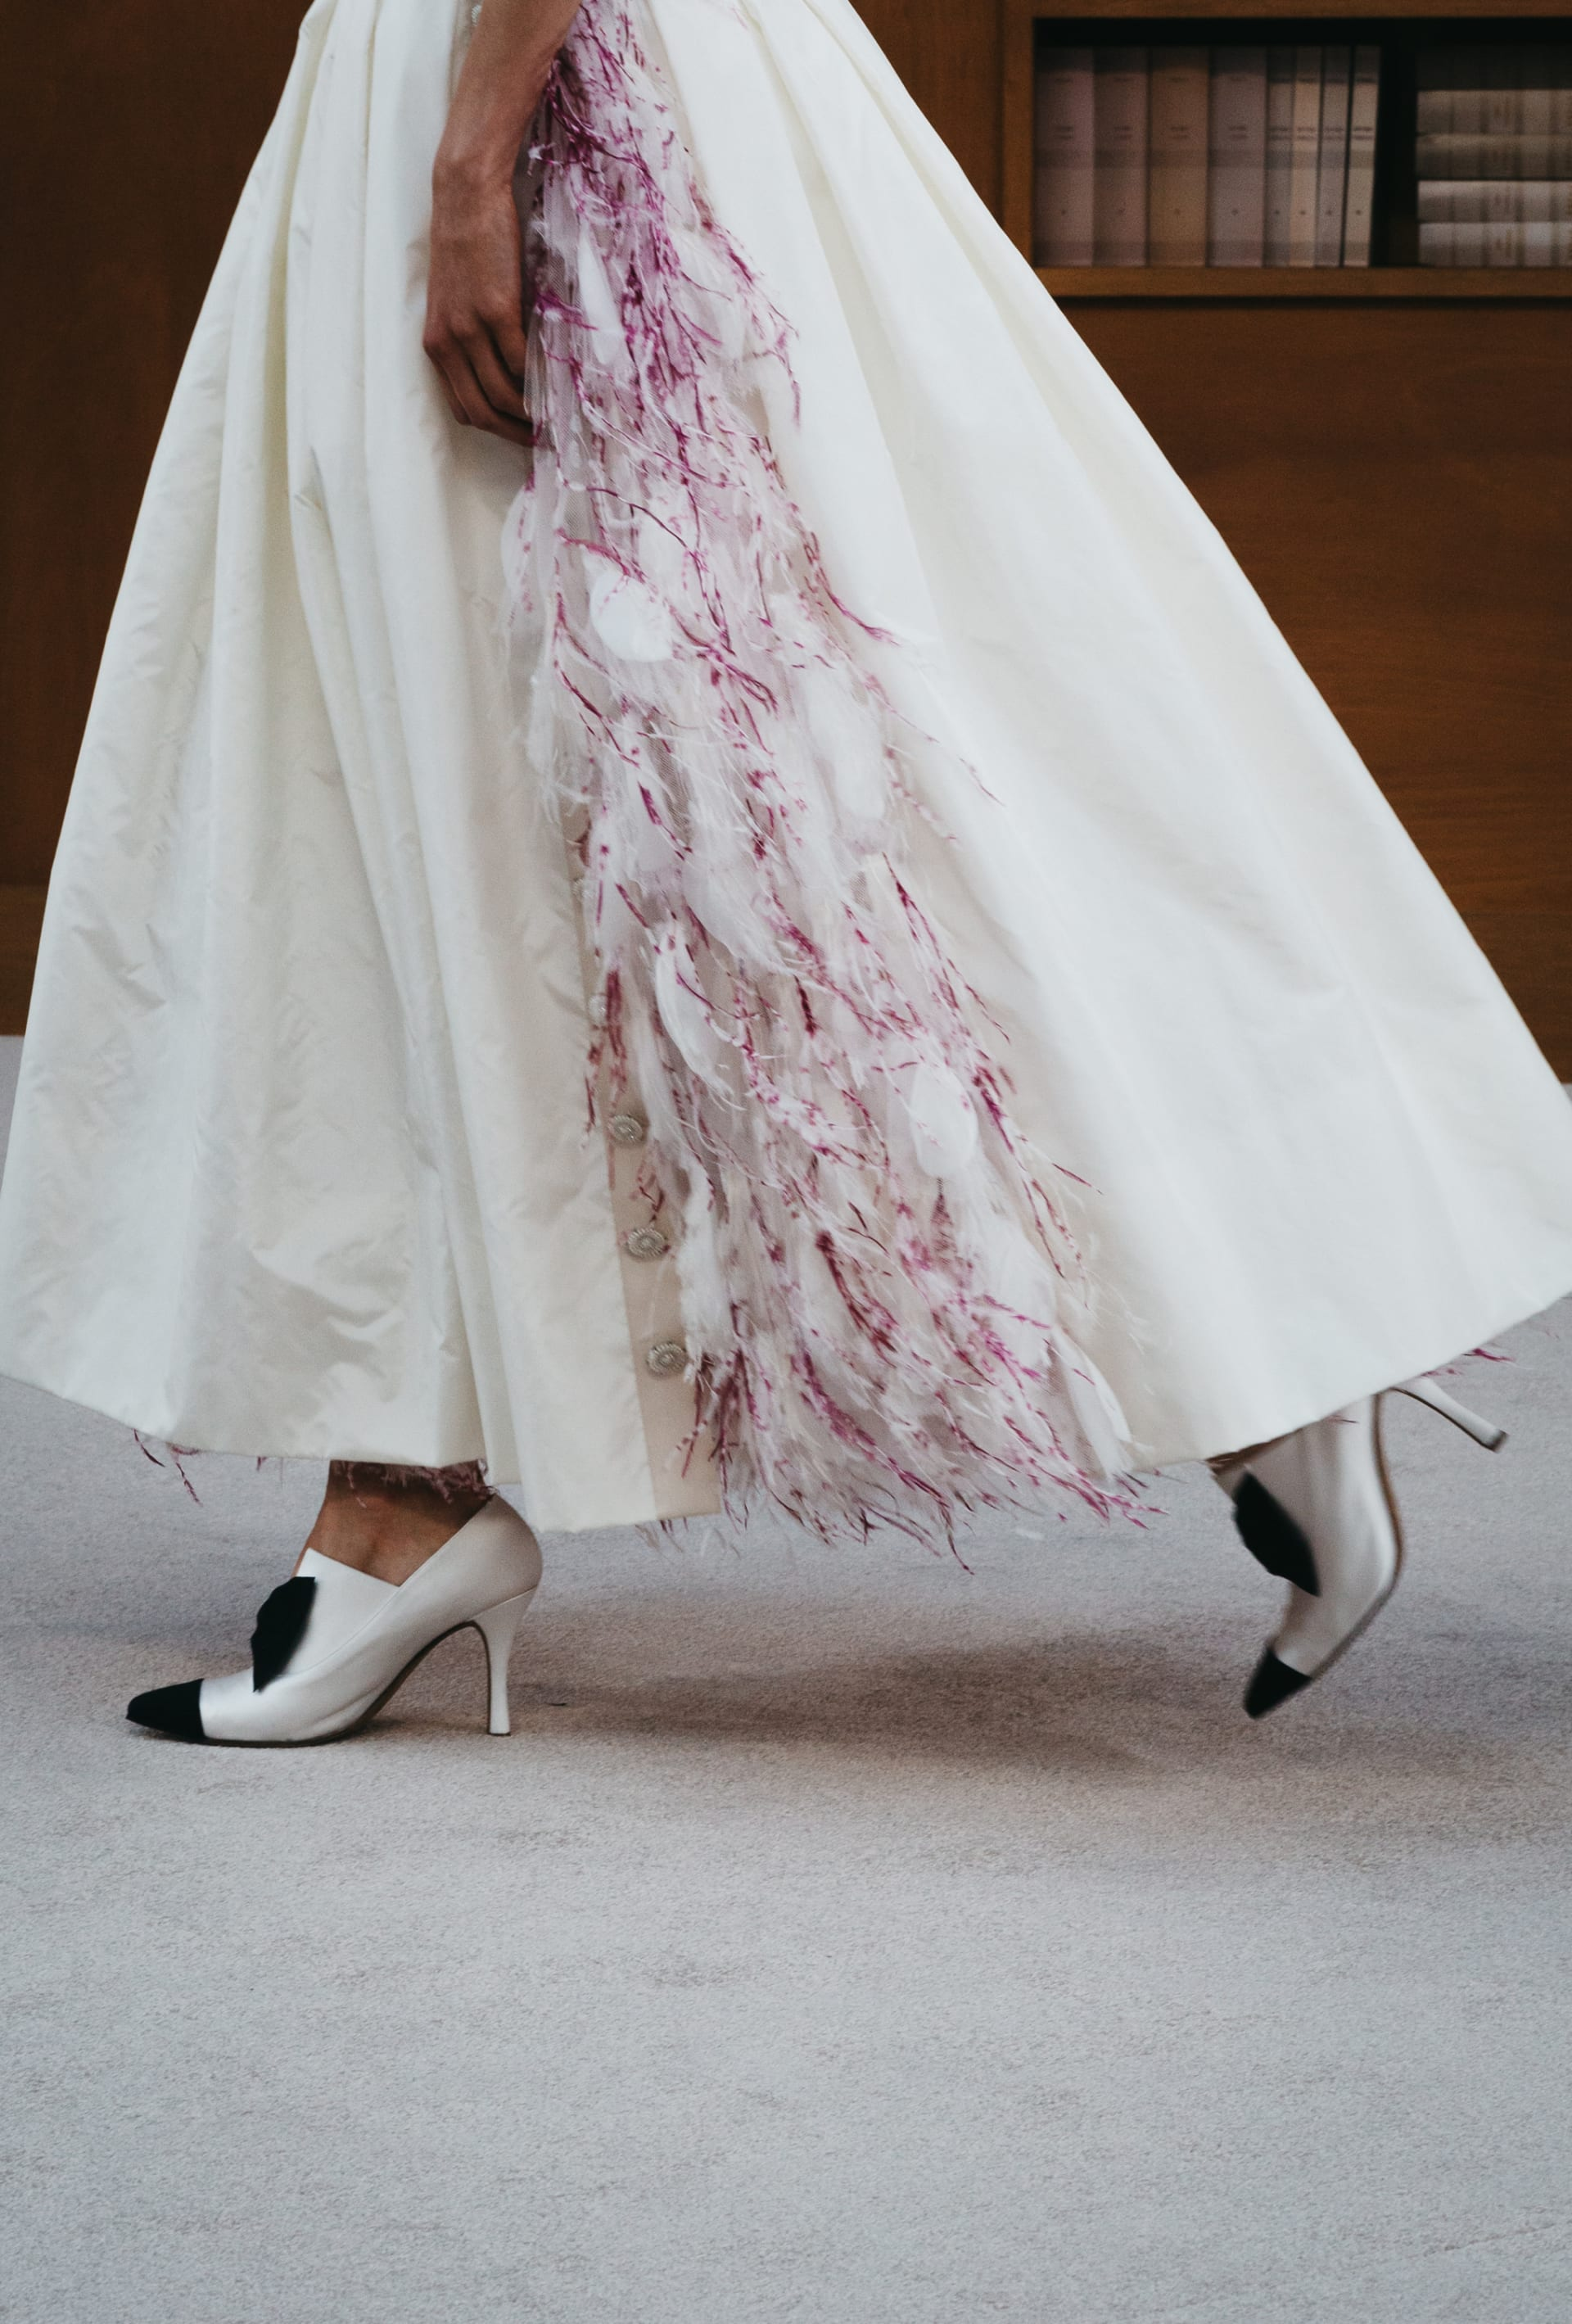 View 4 - Look 62 - Fall-Winter 2019/20 Haute-Couture - see full sized version